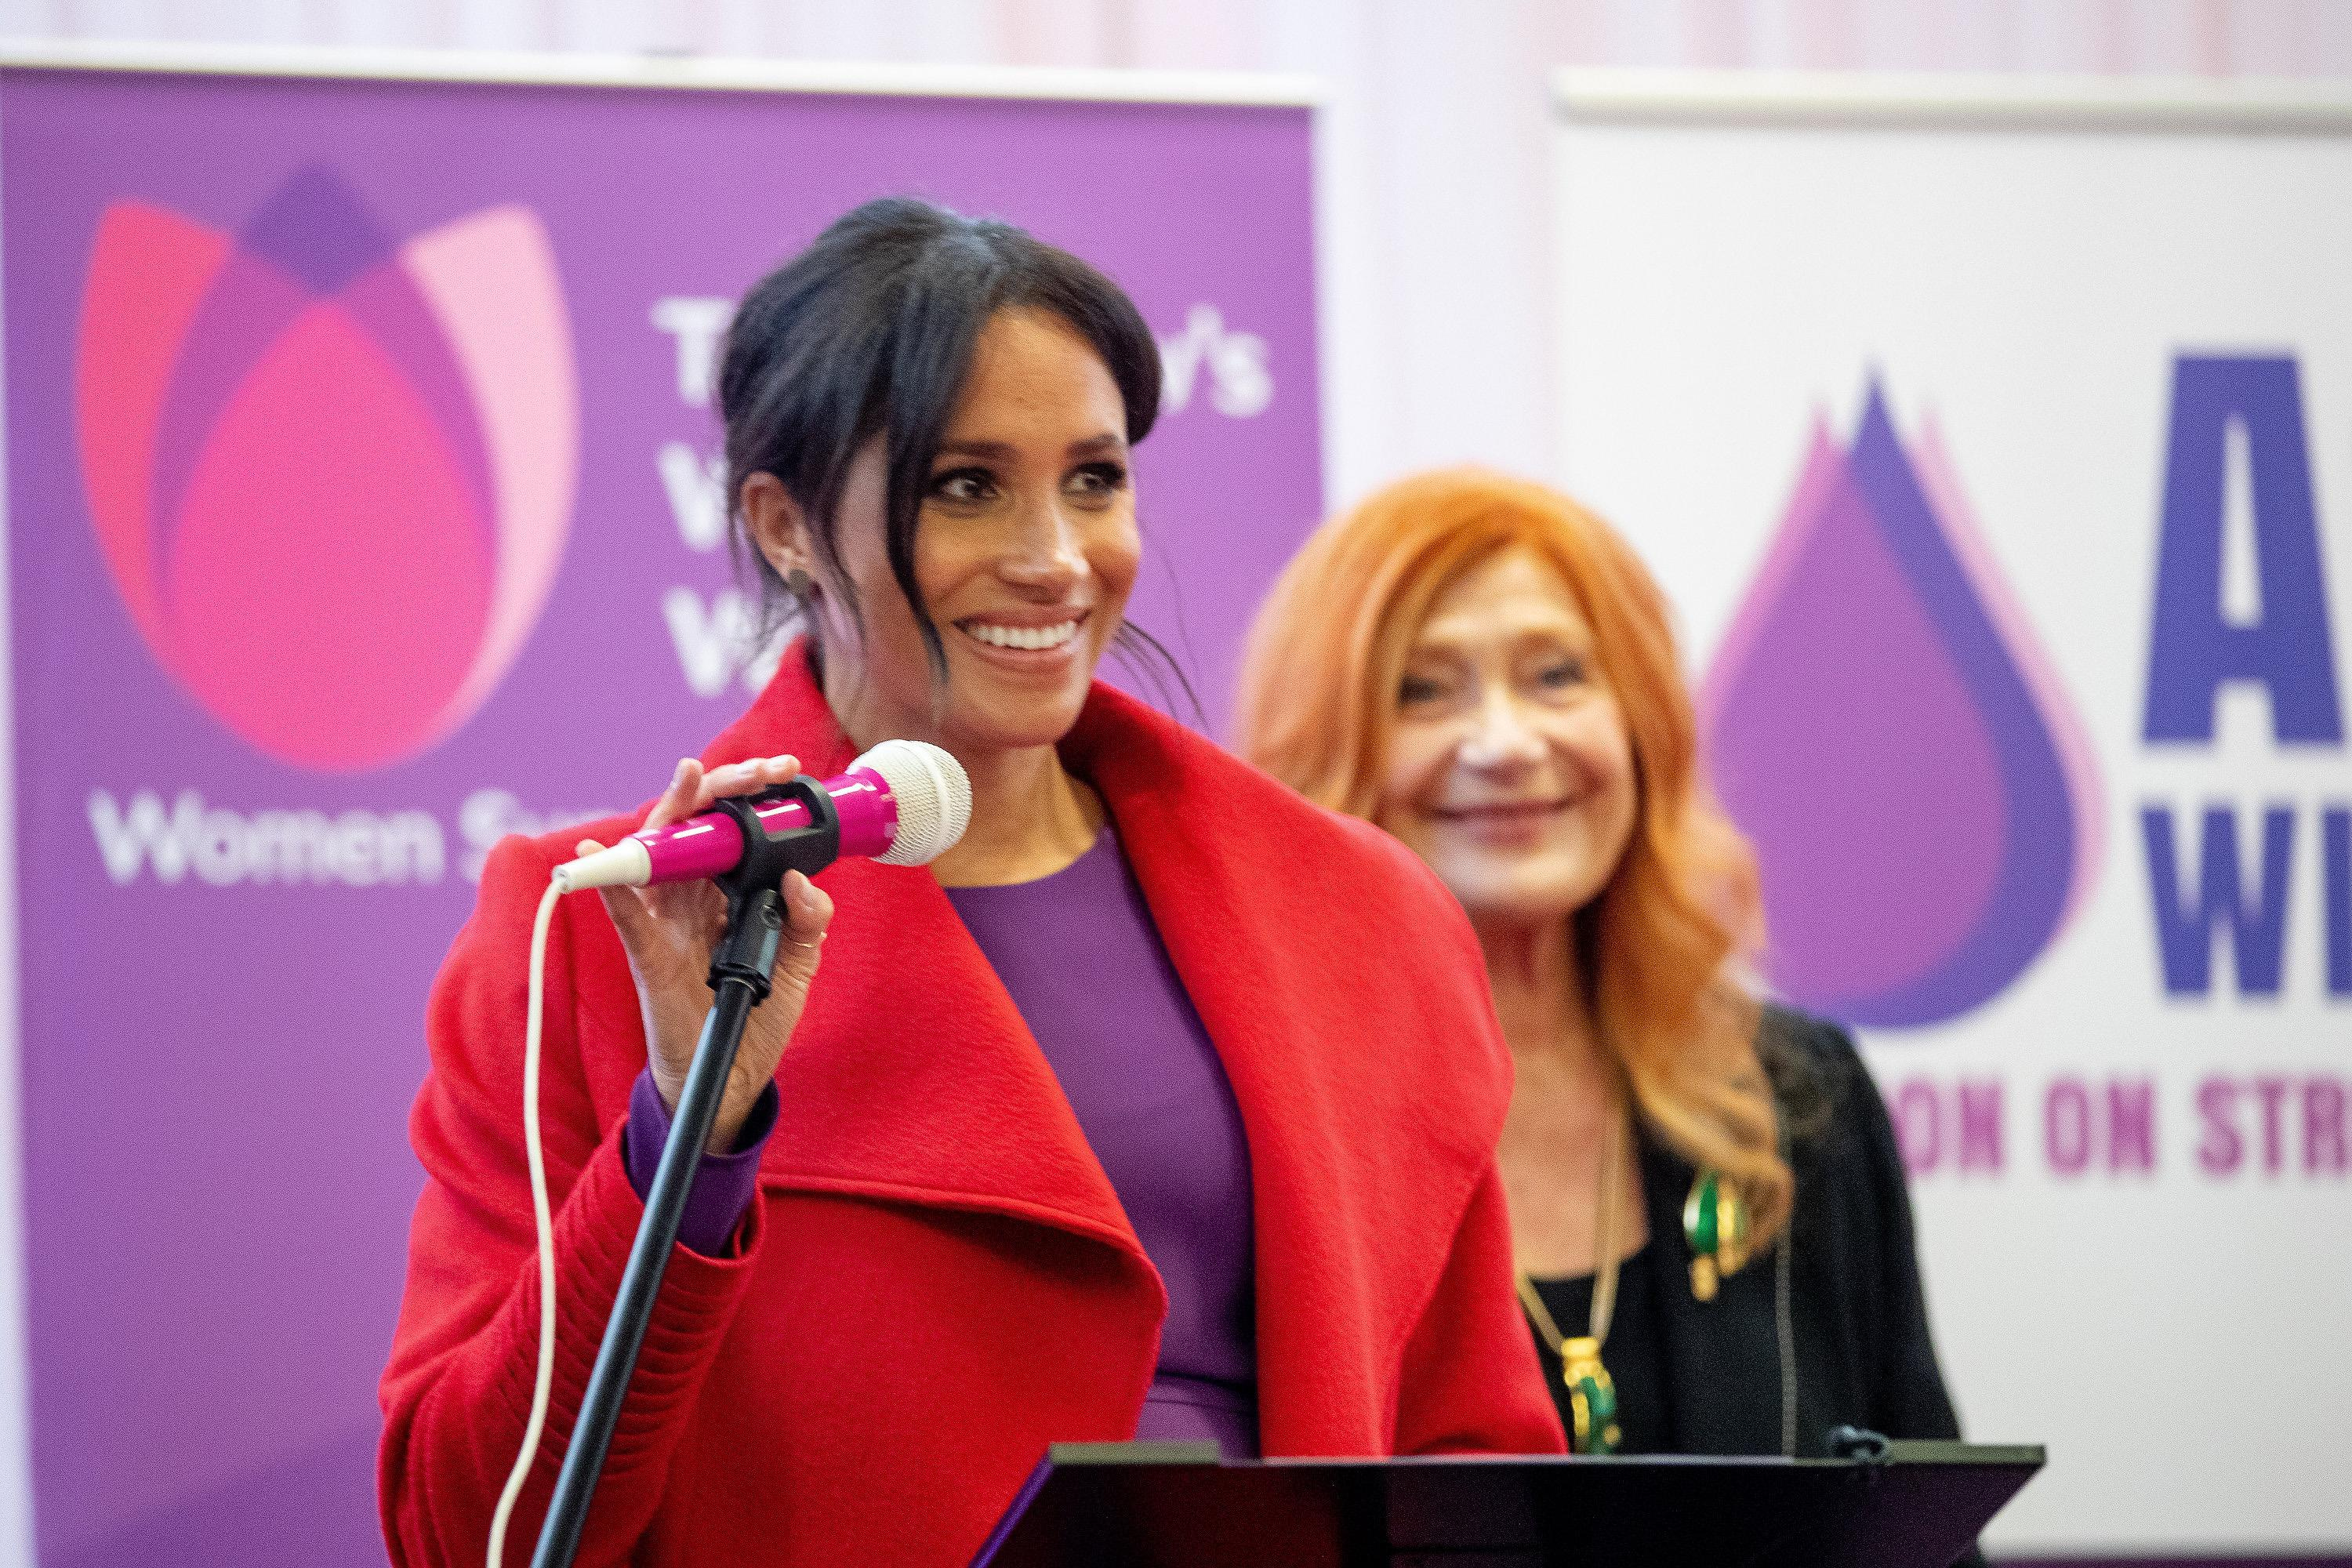 BIRKENHEAD, ENGLAND - JANUARY 14: Meghan, Duchess of Sussex visits 'Tomorrow's Women Wirral' Charity on January 14, 2019 in Birkenhead, United Kingdom. (Photo by Charlotte Graham - WPA Pool/Getty Images)